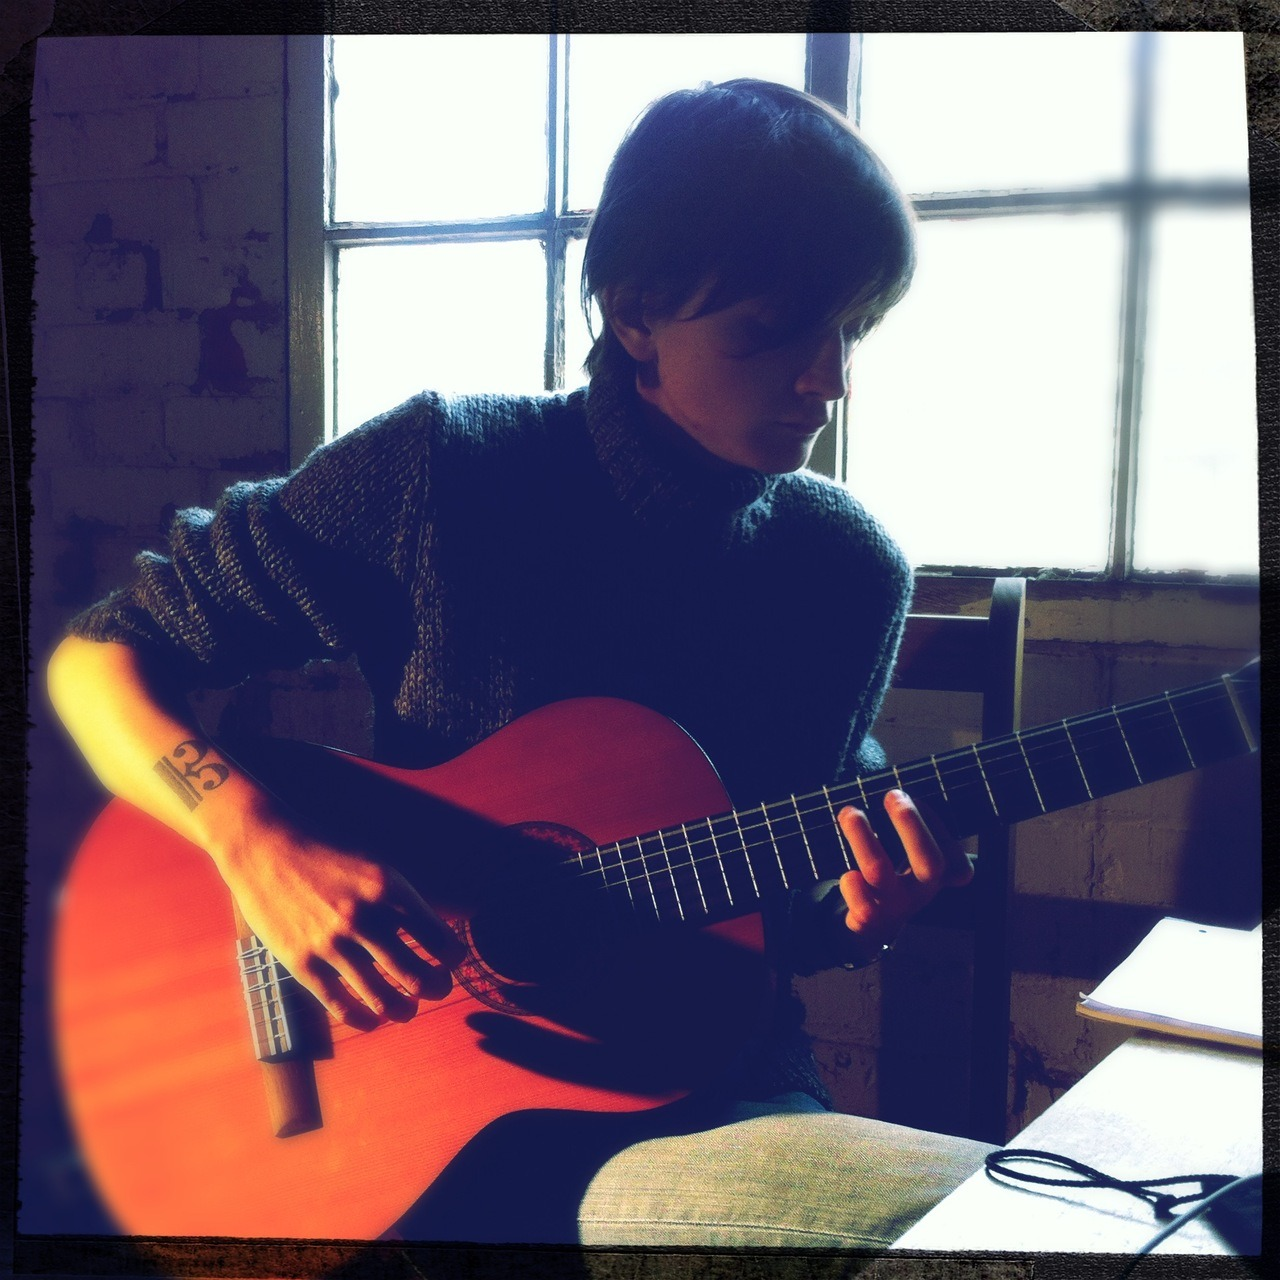 on set/at studio w/nate #guitar Americana Lens, Big Up Film, No Flash, Taken with Hipstamatic